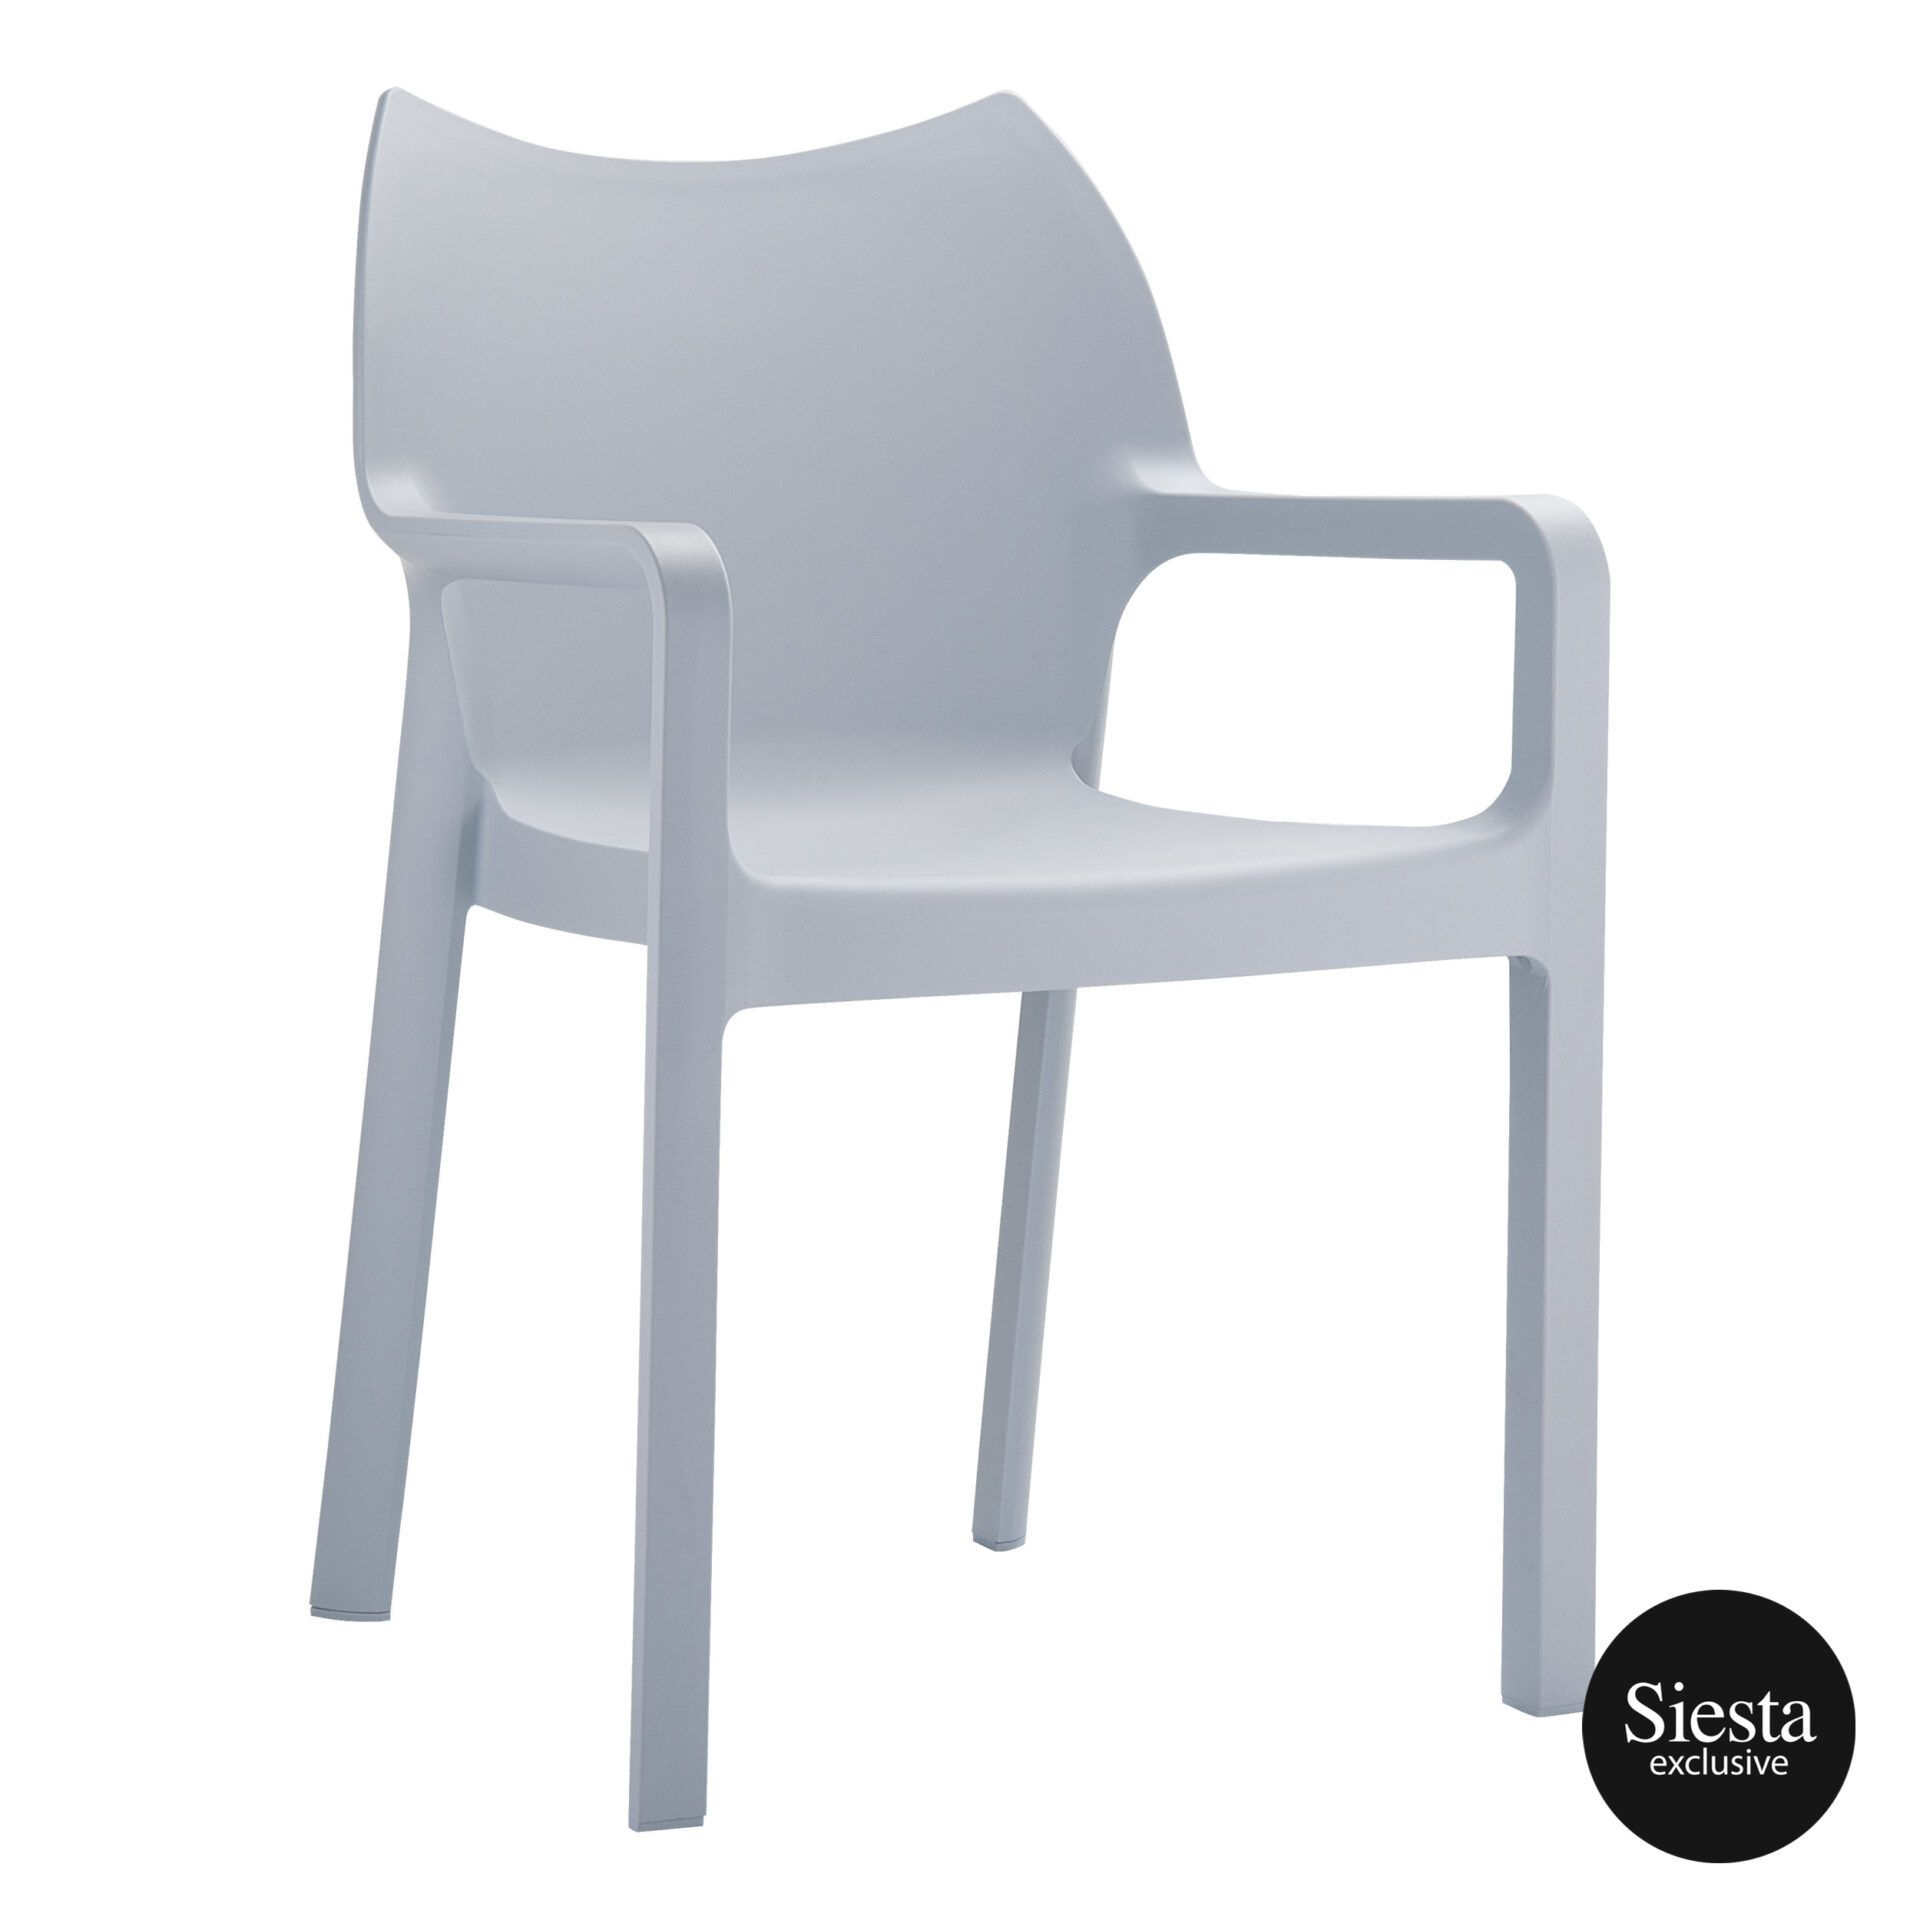 outdoor plastic seating diva chair grey front side 1